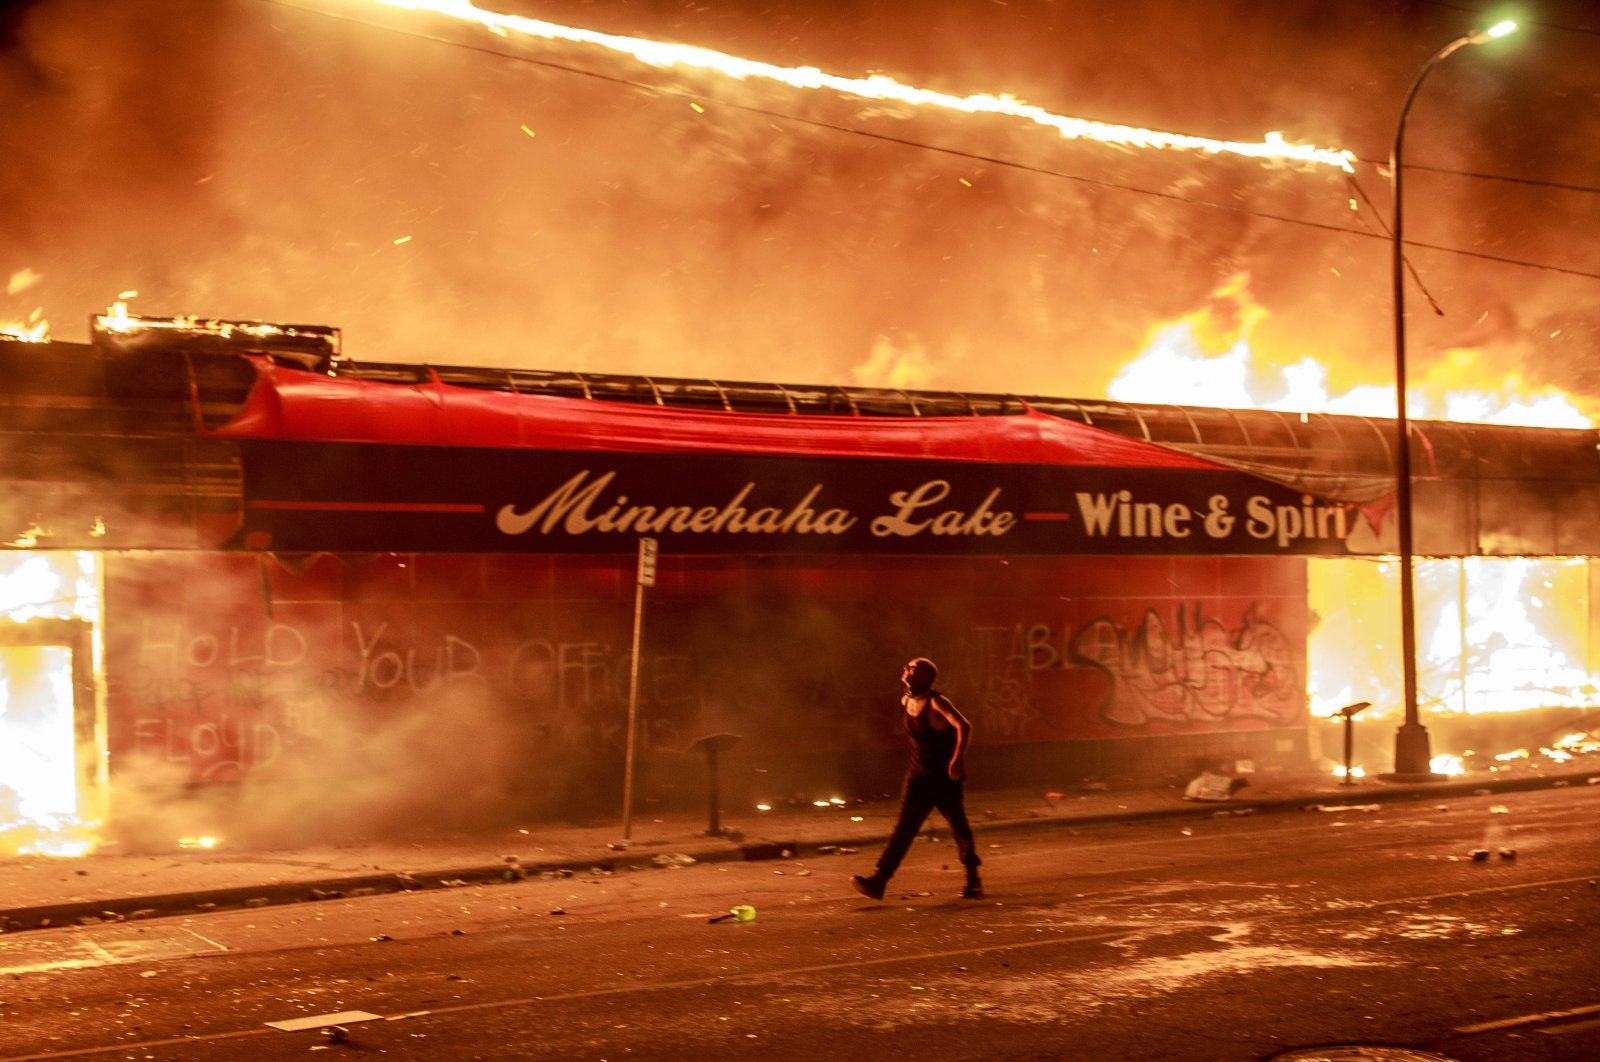 A man walks past a liquor store in flames near the Third Police Precinct during a protest over the death of George Floyd, an unarmed black man, who died after a police officer kneeled on his neck for several minutes, Minneapolis, Minnesota, May 28, 2020. (AFP Photo)